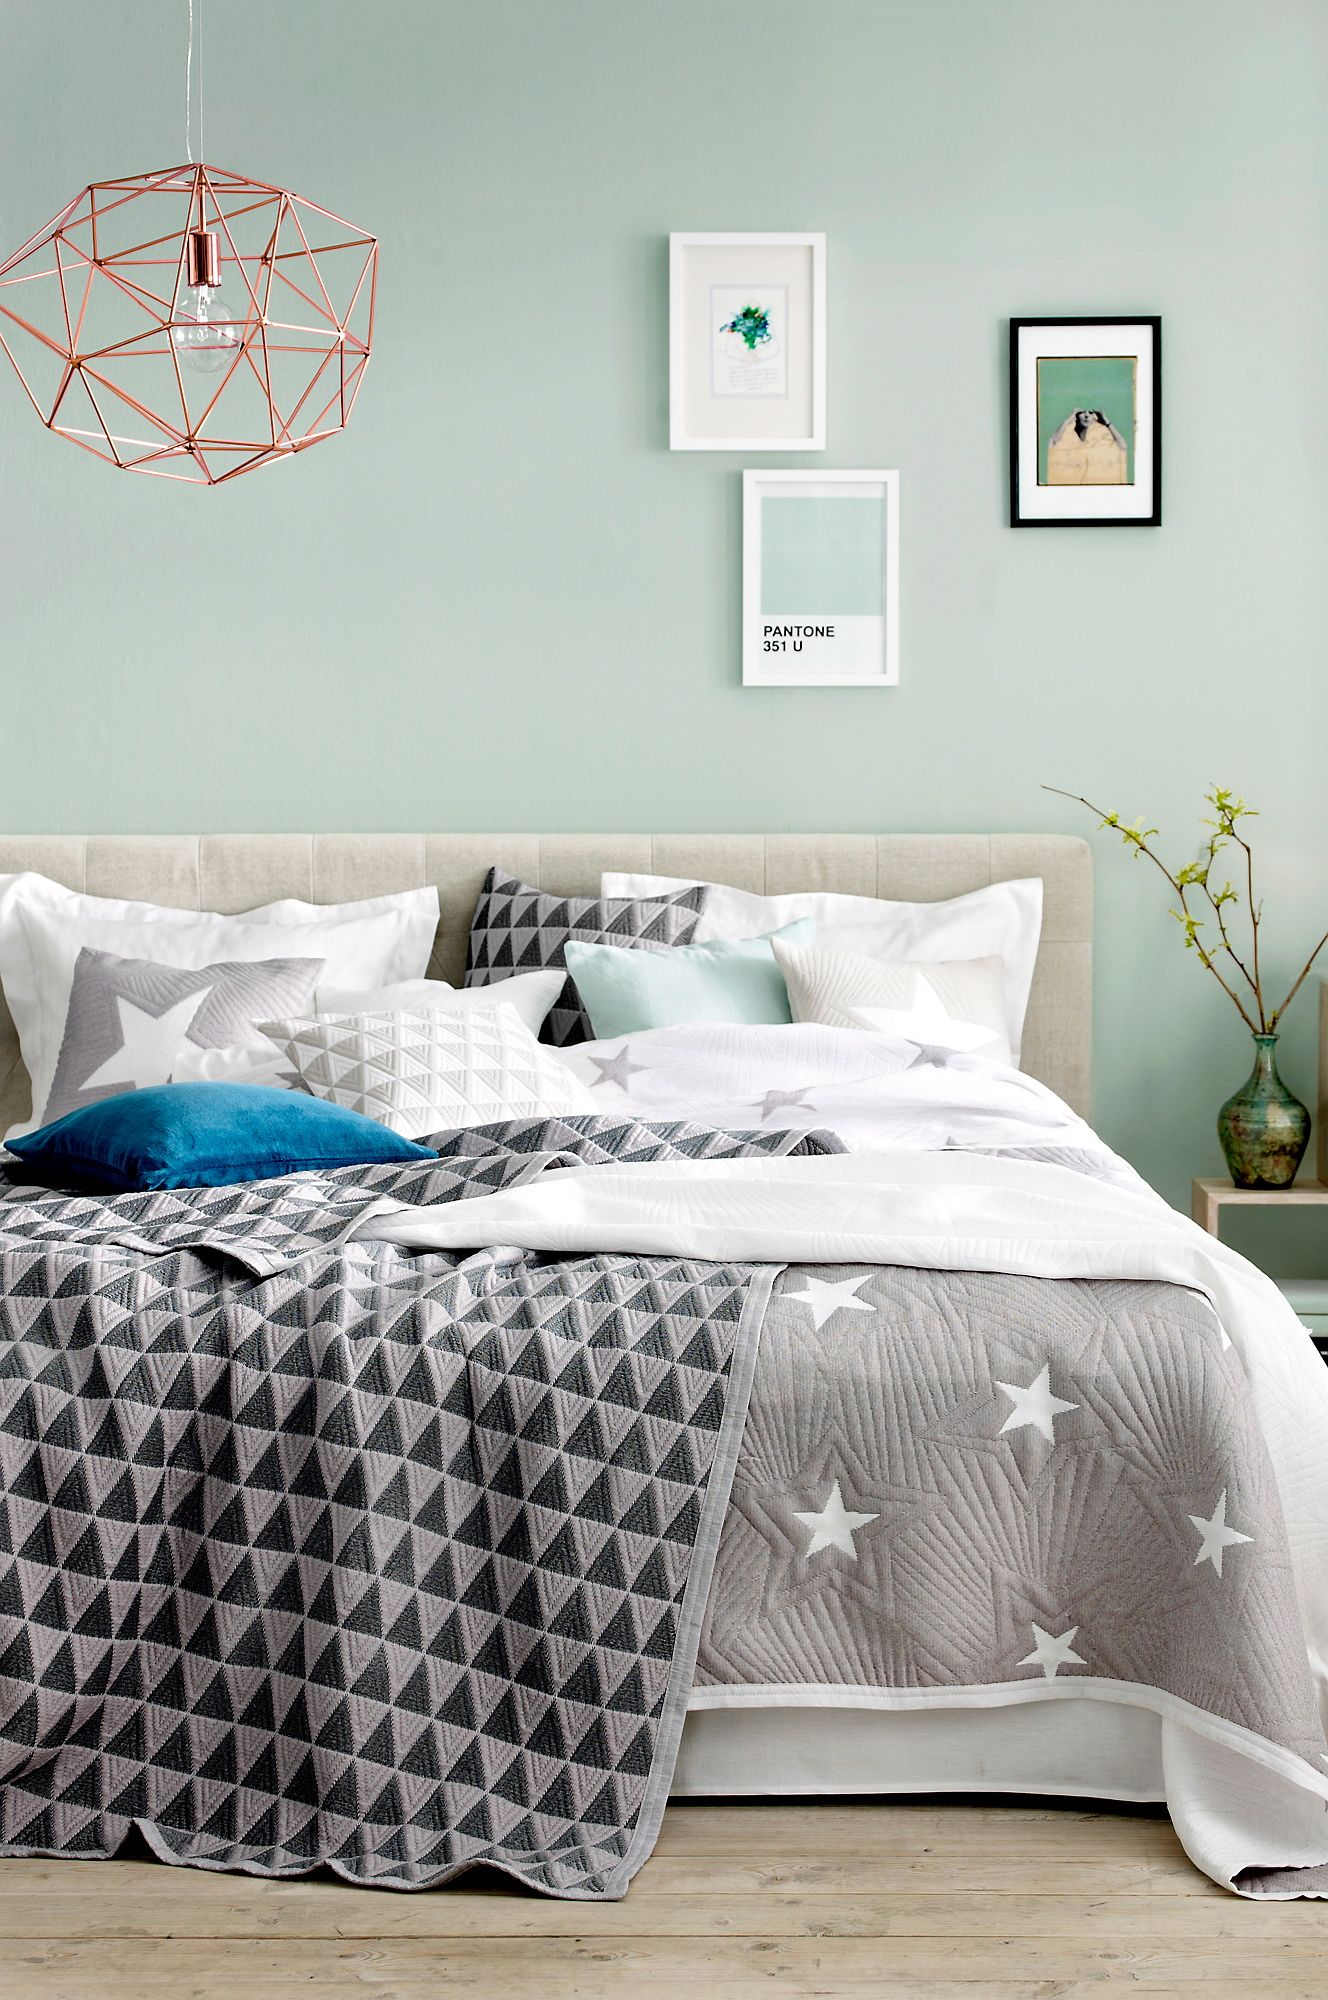 Bon Mint, Watery Blue/green Walls, Grey Accents, Comfy Bed,i Like The Star  Quilt // Bedroom